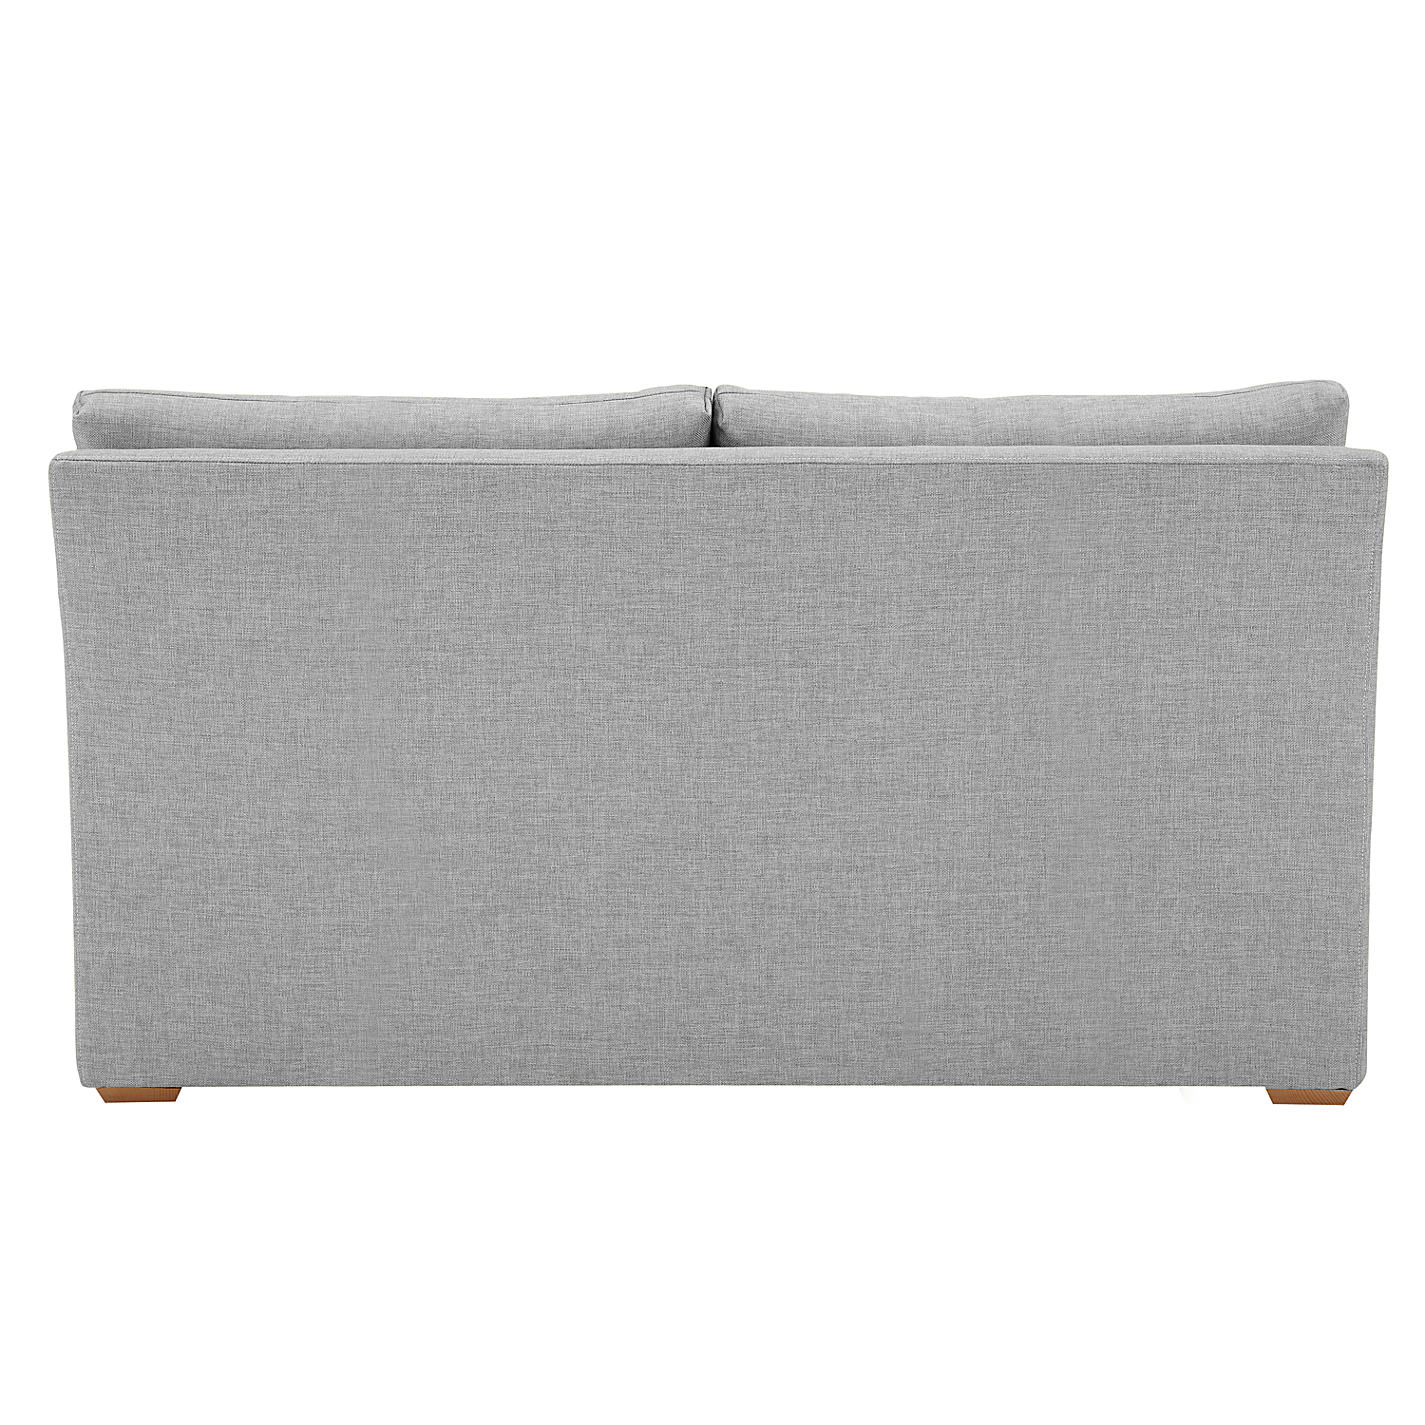 Small Double Sofa Beds John Lewis Kip Bed With Foam Bluewater 649 00 TheSofa